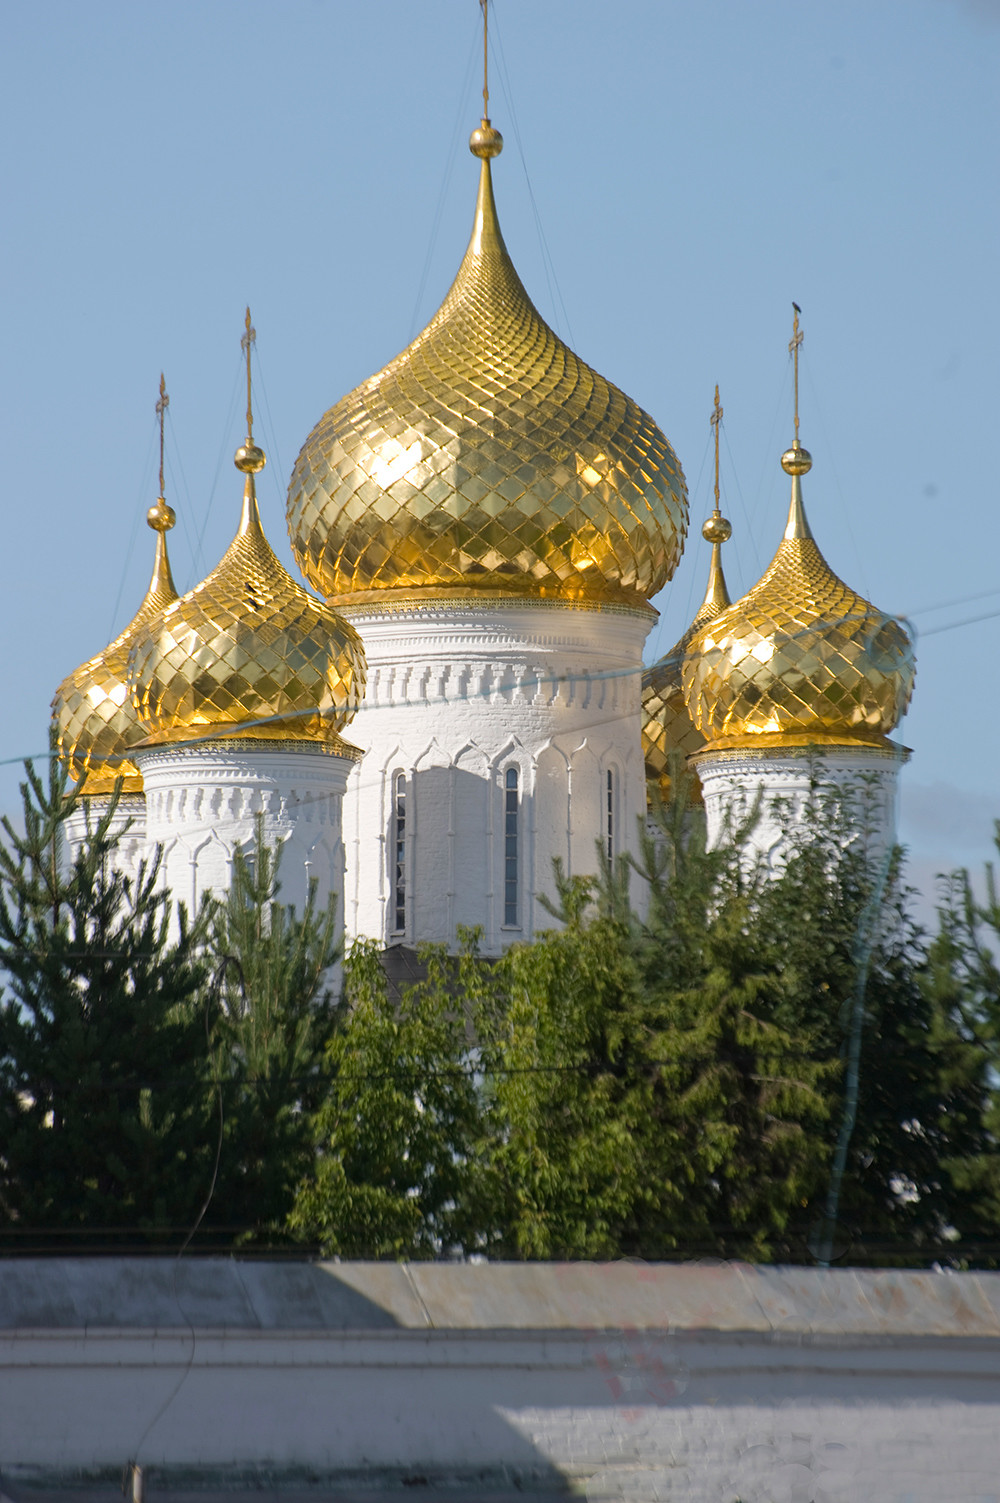 Epiphany Cathedral. South view with golden cupolas of original 16th-century structure. August 12, 2017.